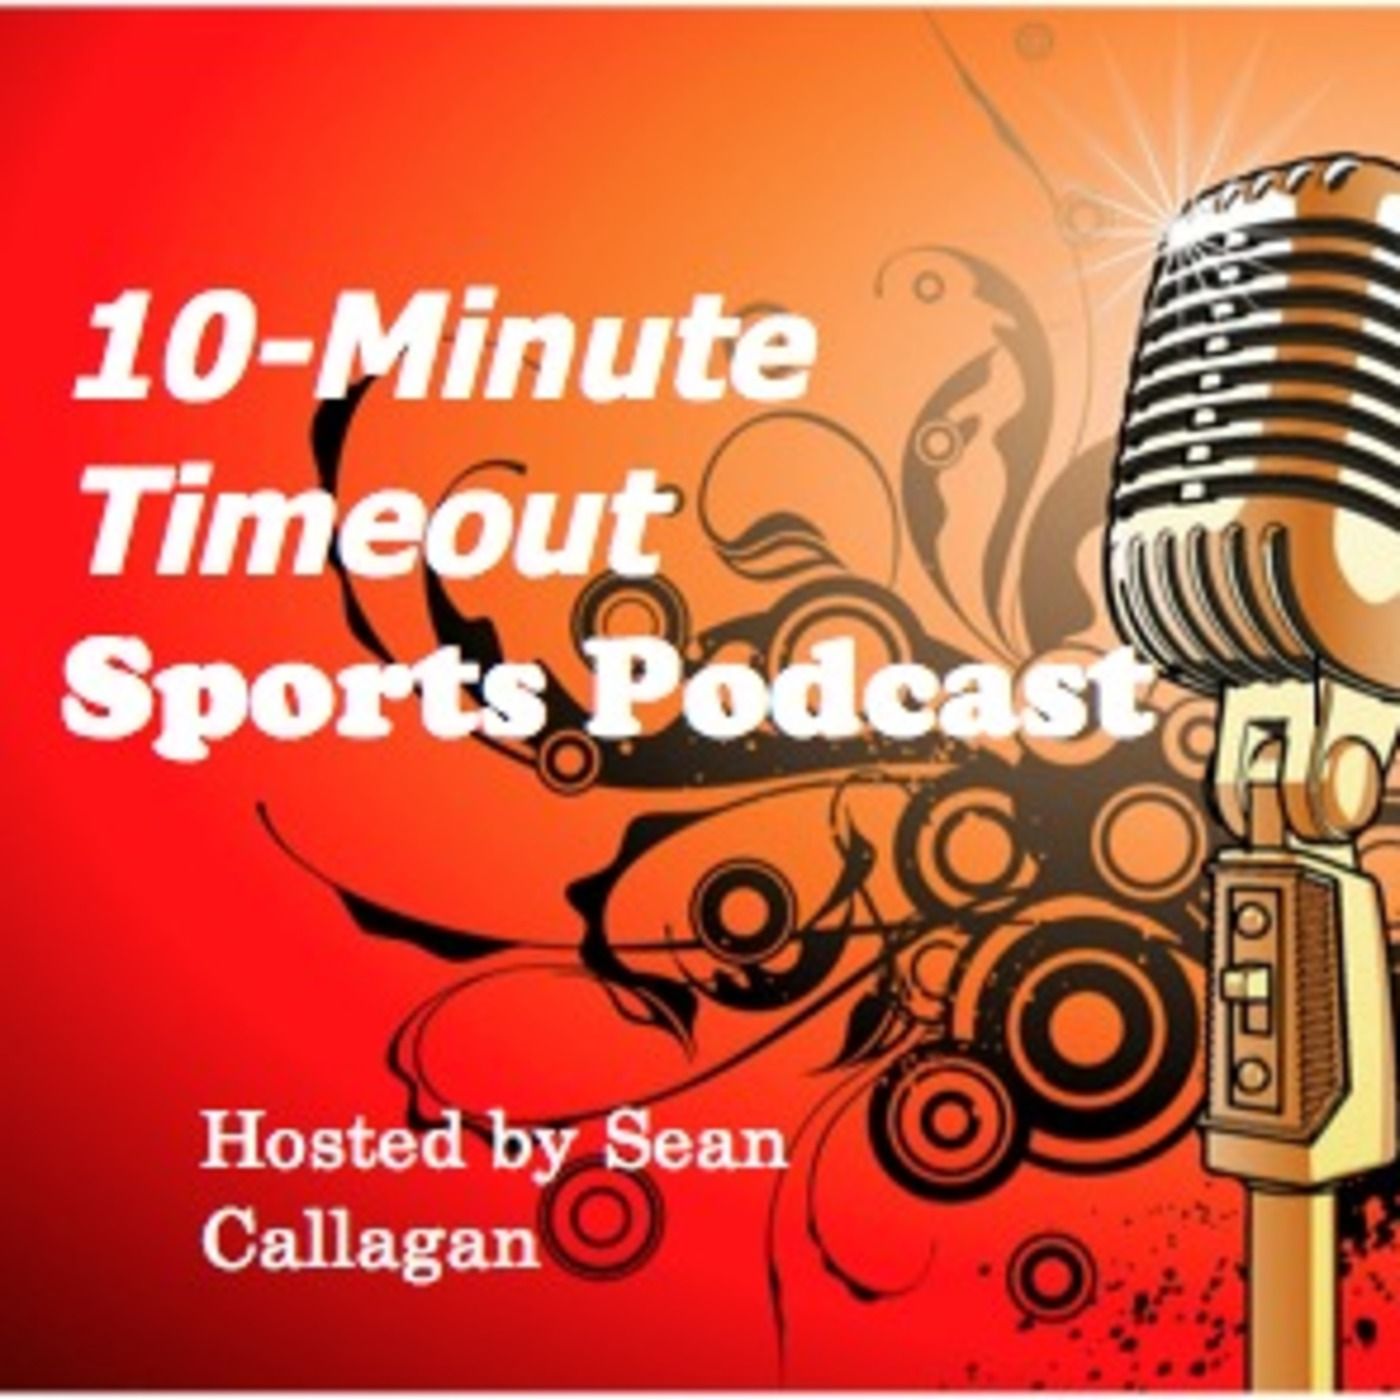 10 Minute Timeout Sports Podcast